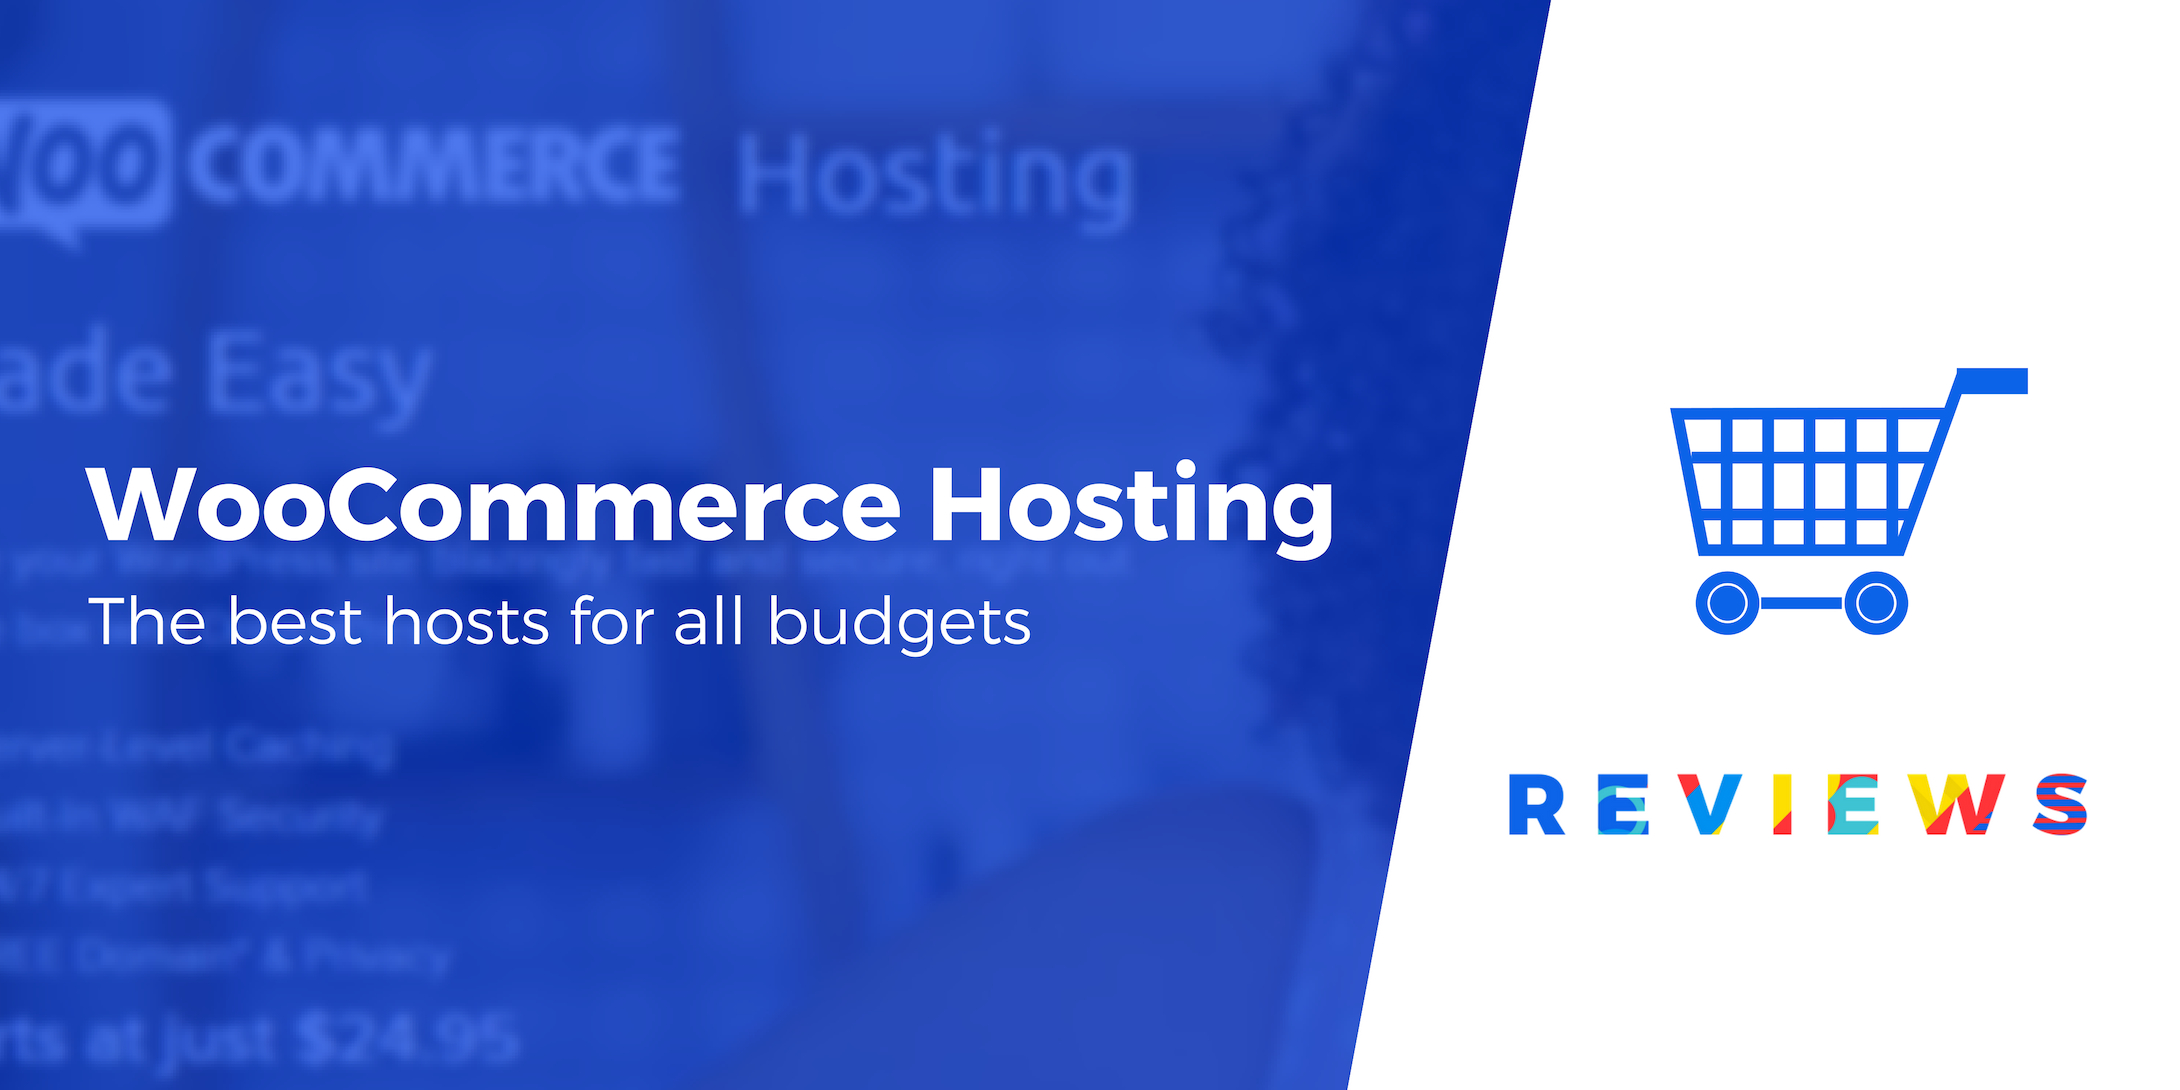 3 Best WooCommerce Hosting Providers Compared (For All Budgets)